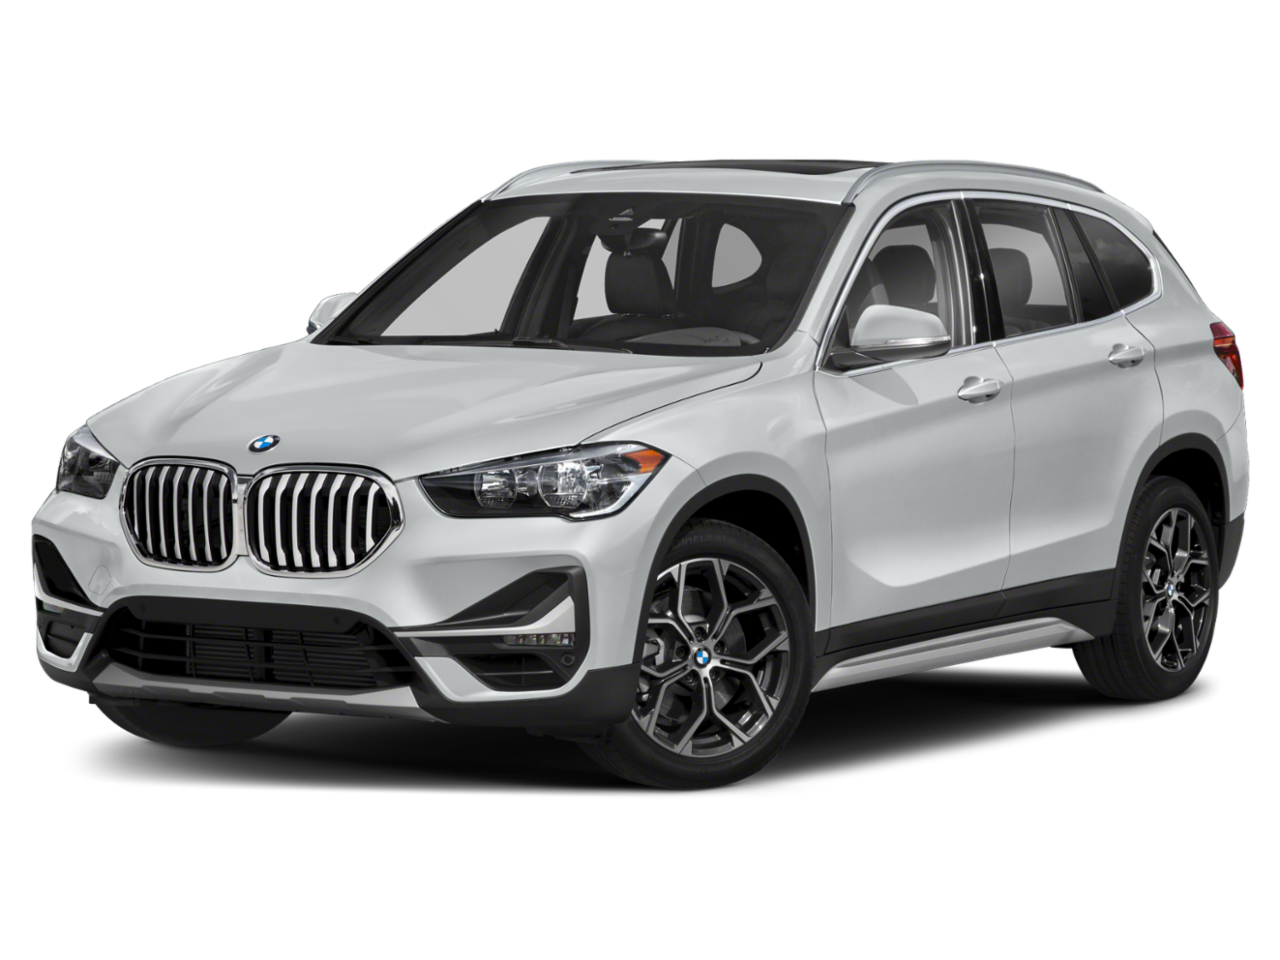 Buyer's Guide: 2020 BMW X1